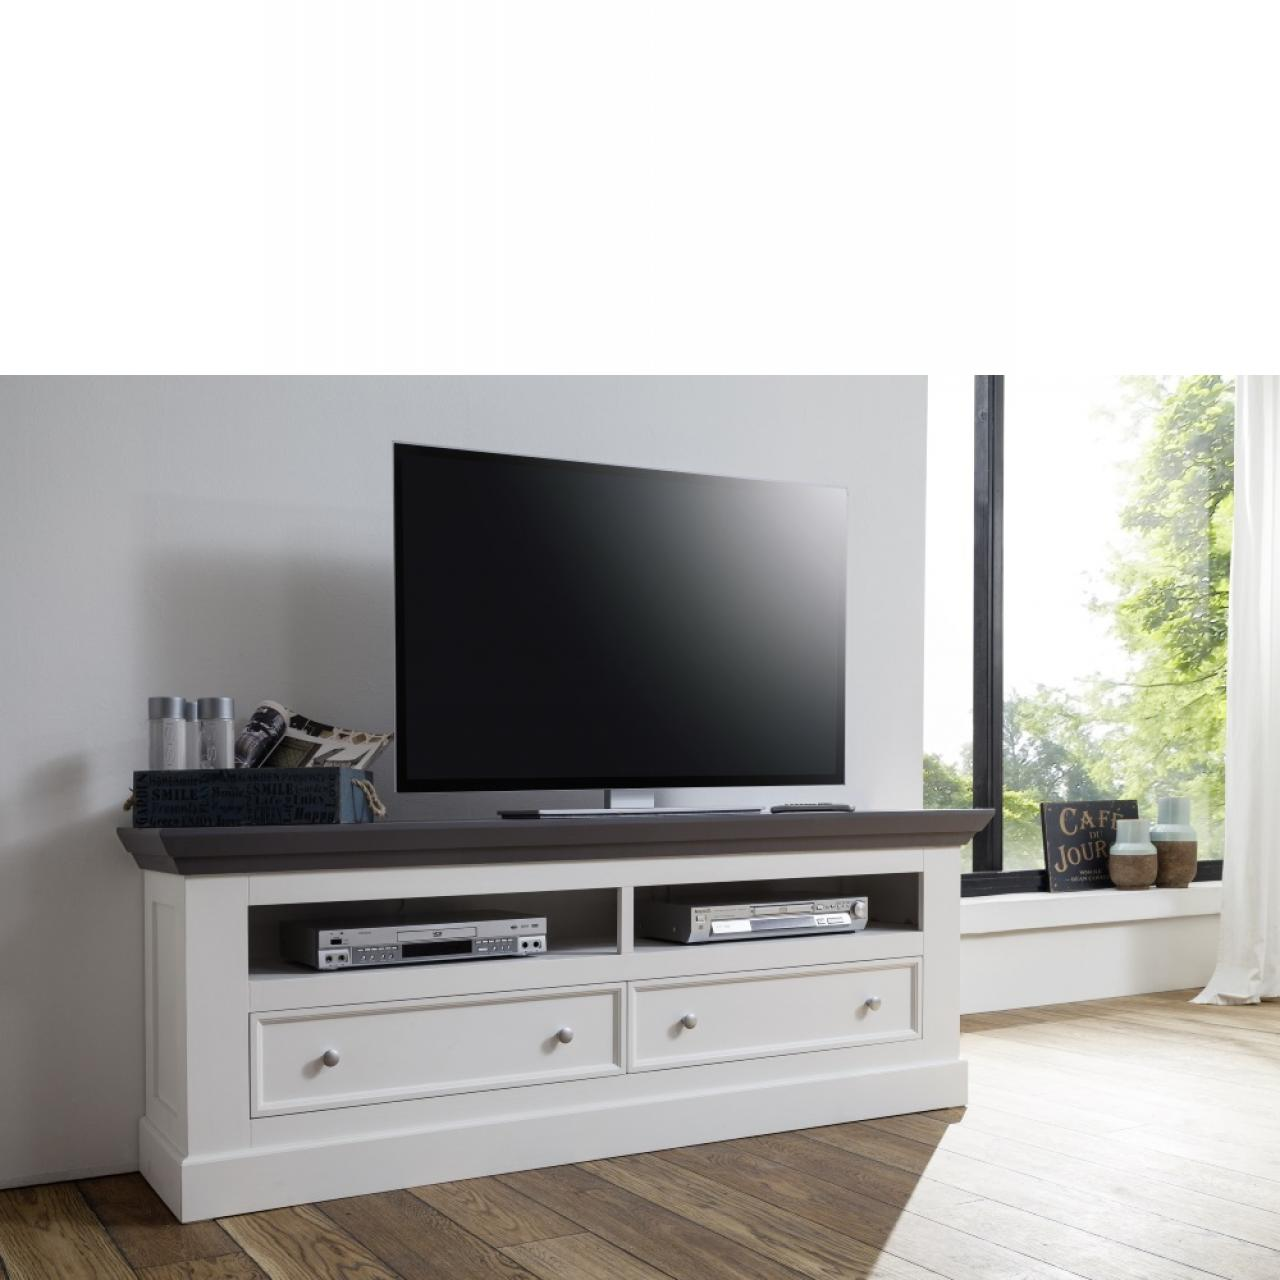 tv schrank versenkbar fernseher versenkbar sideboard. Black Bedroom Furniture Sets. Home Design Ideas